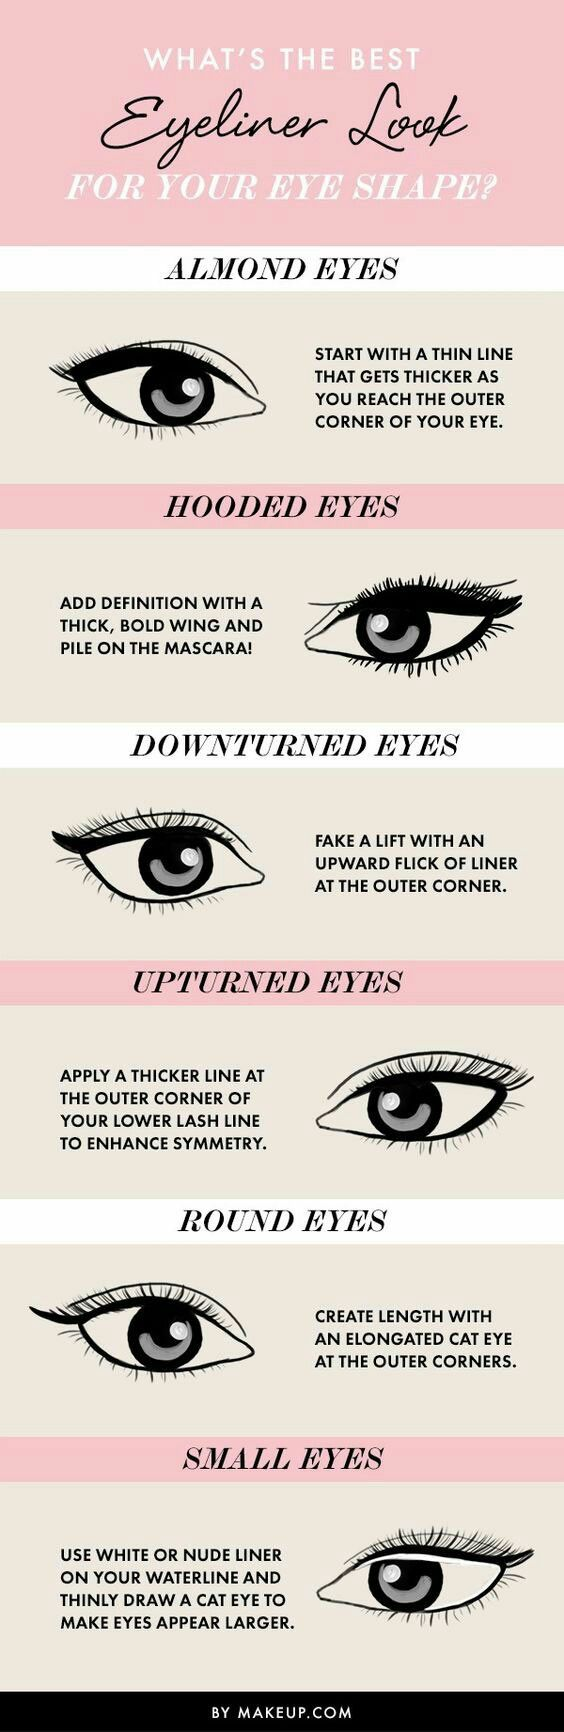 Whats the best eyeliner look for your eye shape almond hooded whats the best eyeliner look for your eye shape almond hooded downturned upturned round small eye makeup makeup inspo pinterest best eyeliner ccuart Gallery